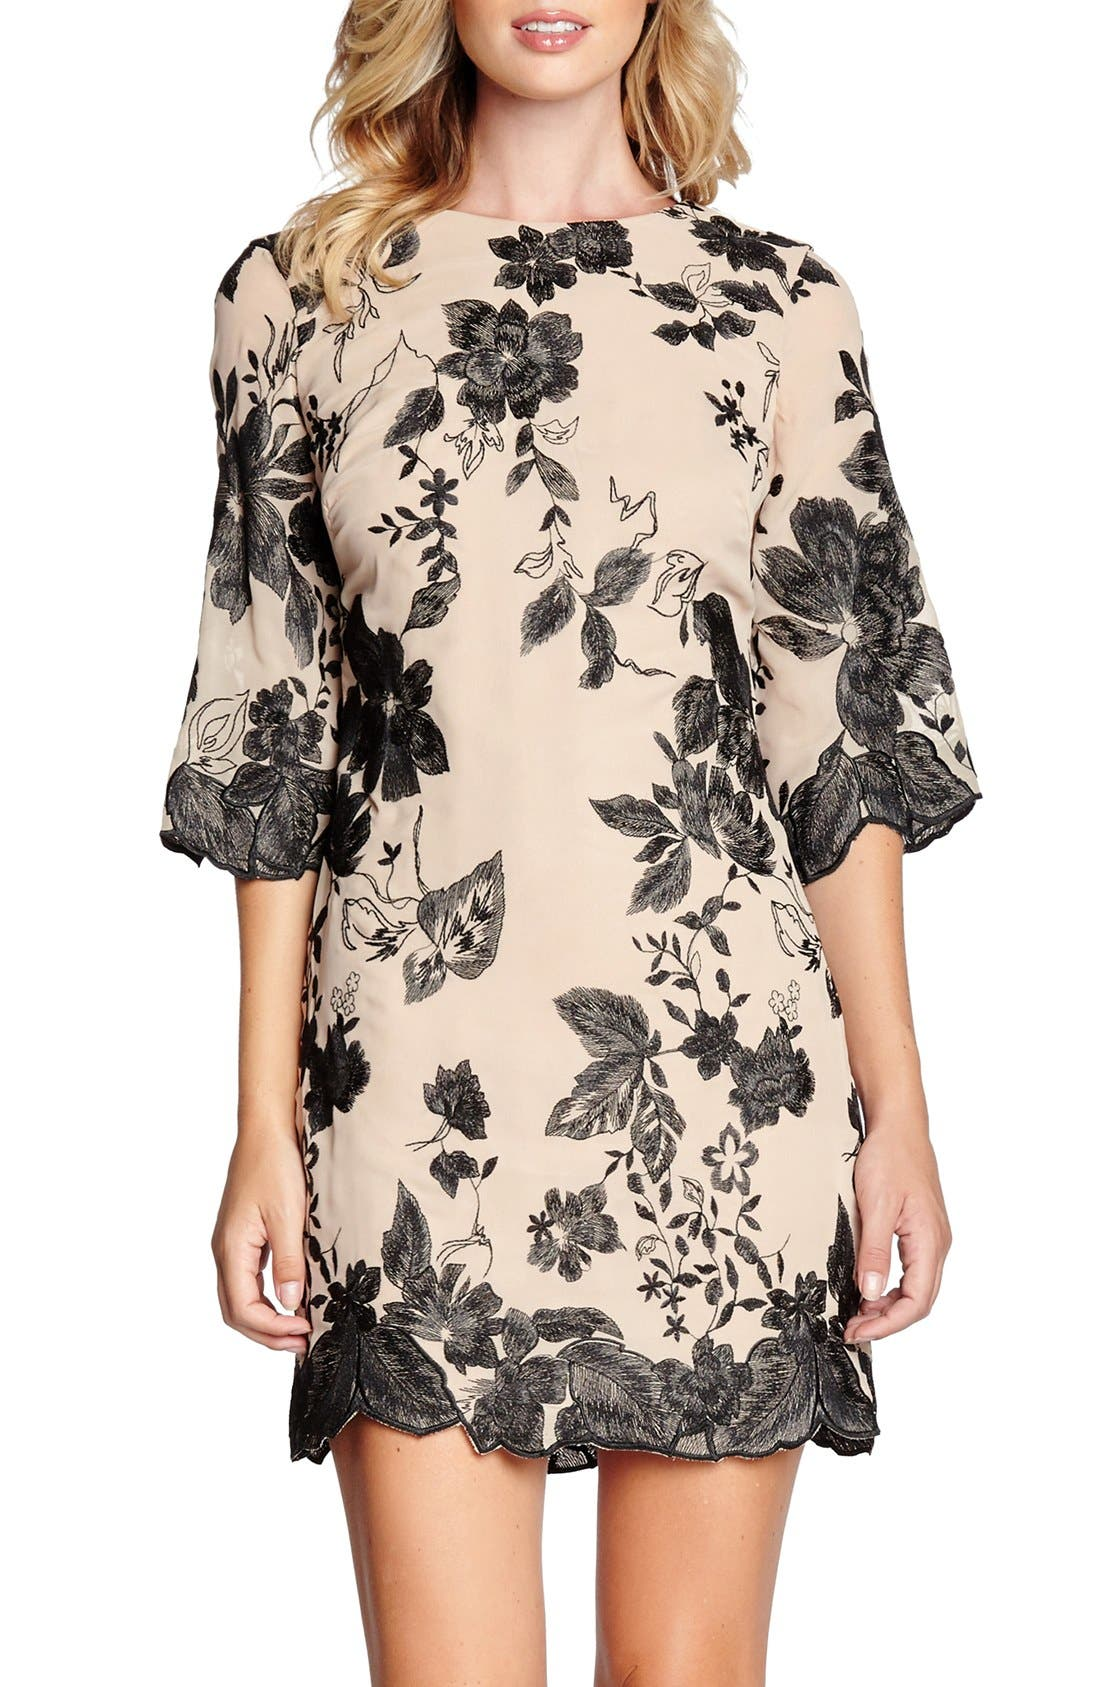 'Paige' Metallic Embroidered Chiffon Shift Dress,                             Main thumbnail 1, color,                             259